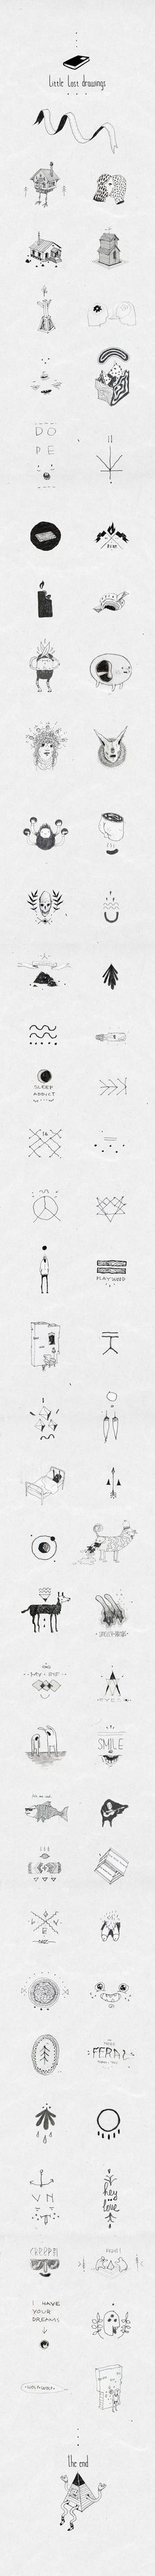 Little Lost Drawings by Slav Gipsy, via Behance